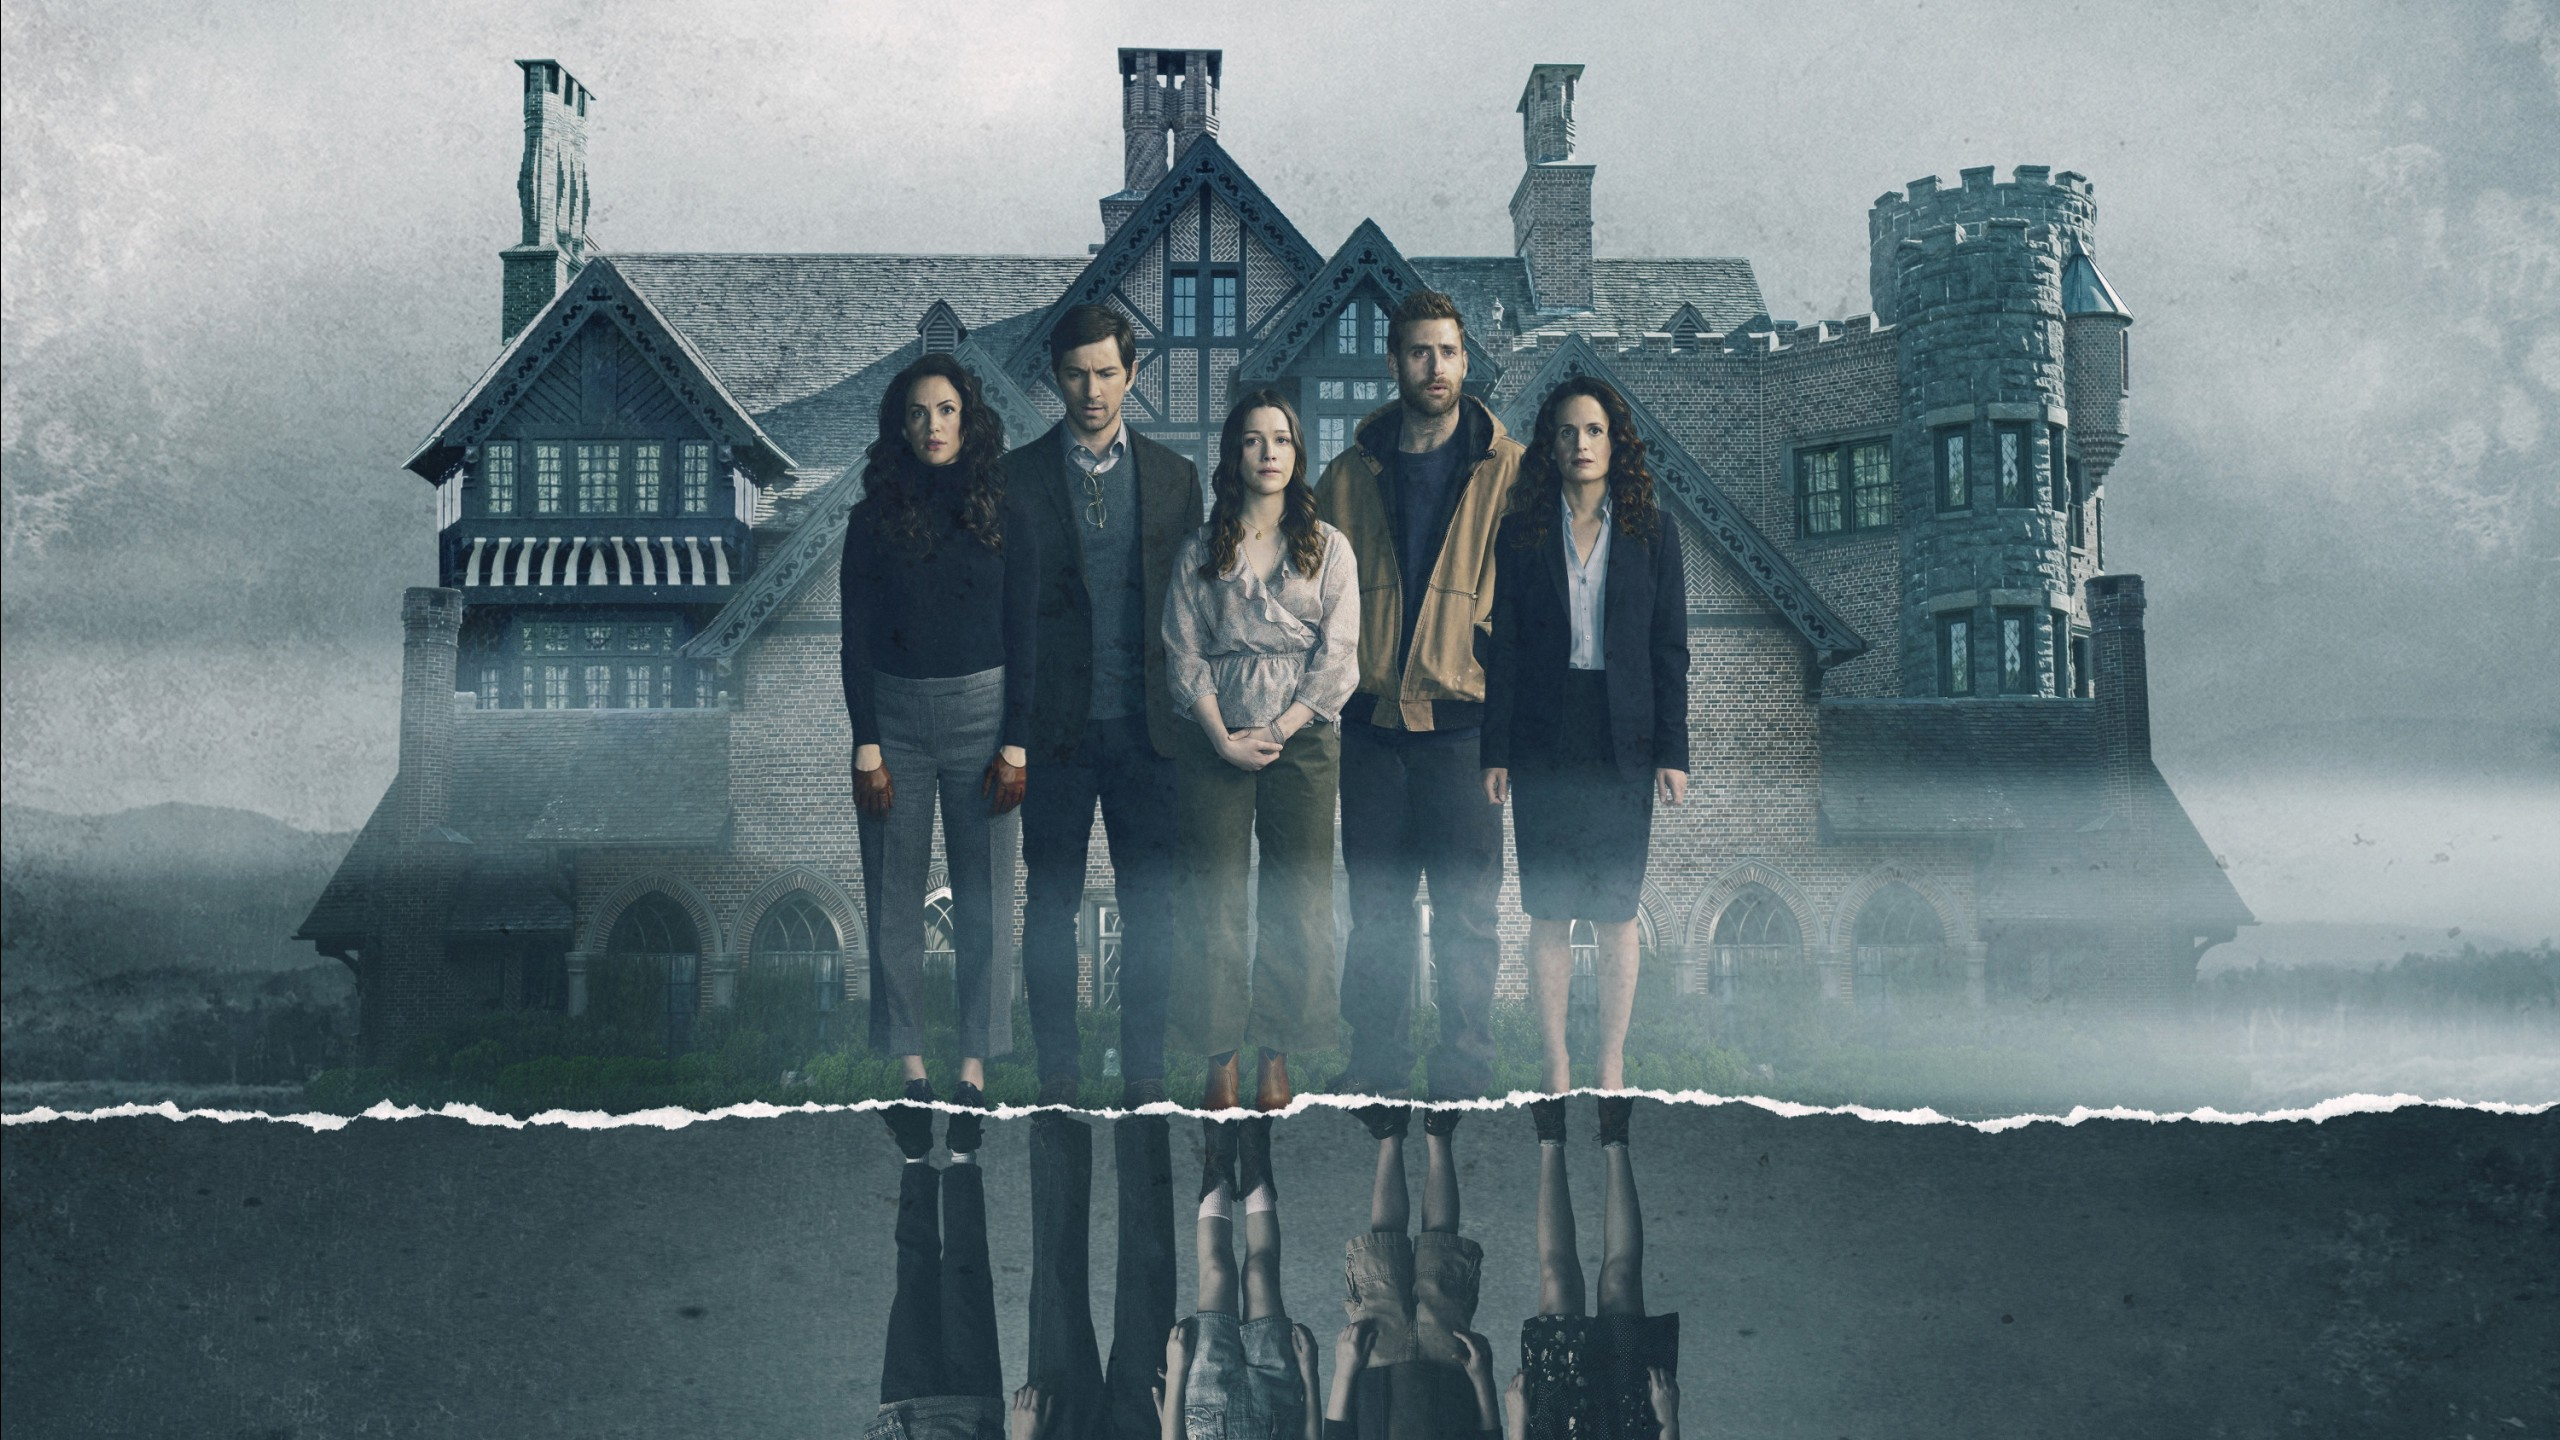 Top 10 3d Wallpapers For Android The Haunting Of Hill House 2018 Wallpapers Hd Wallpapers